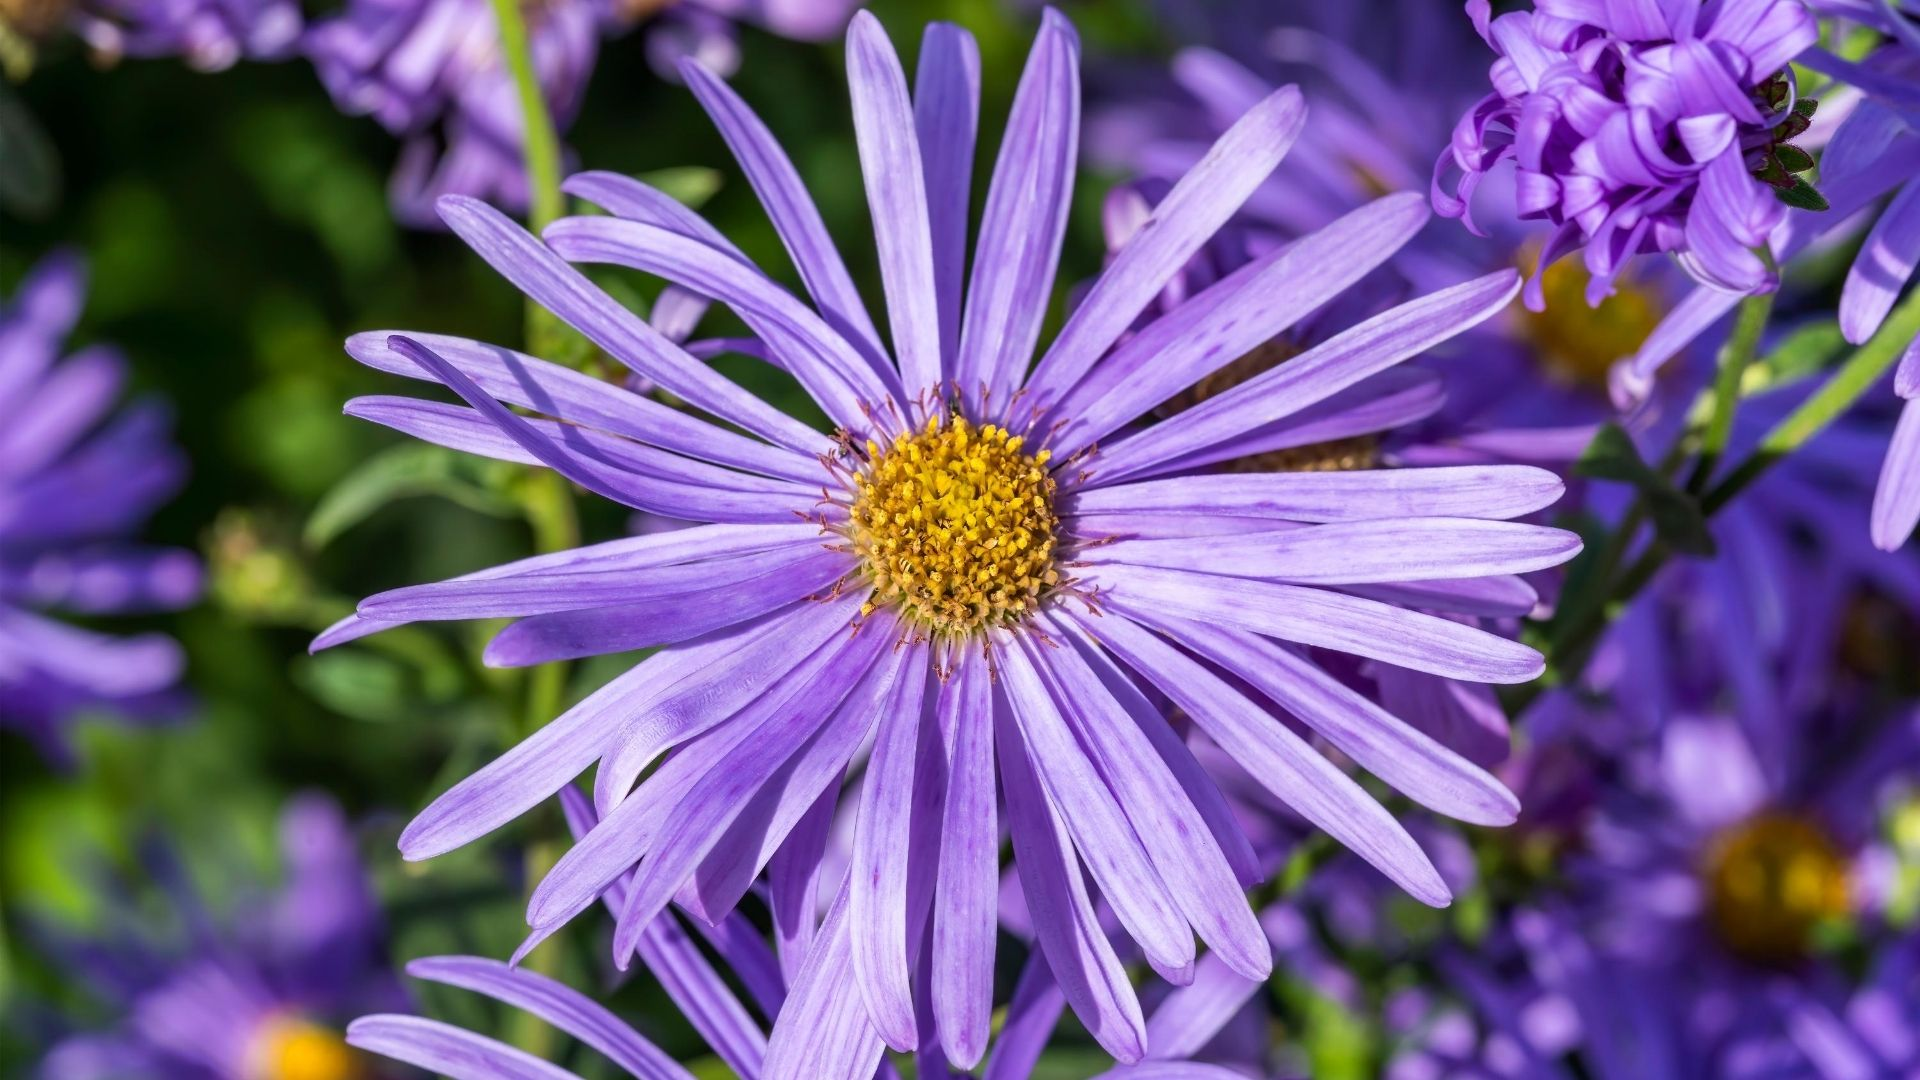 Close up of a single Aster Frikartii flower in full bloom.